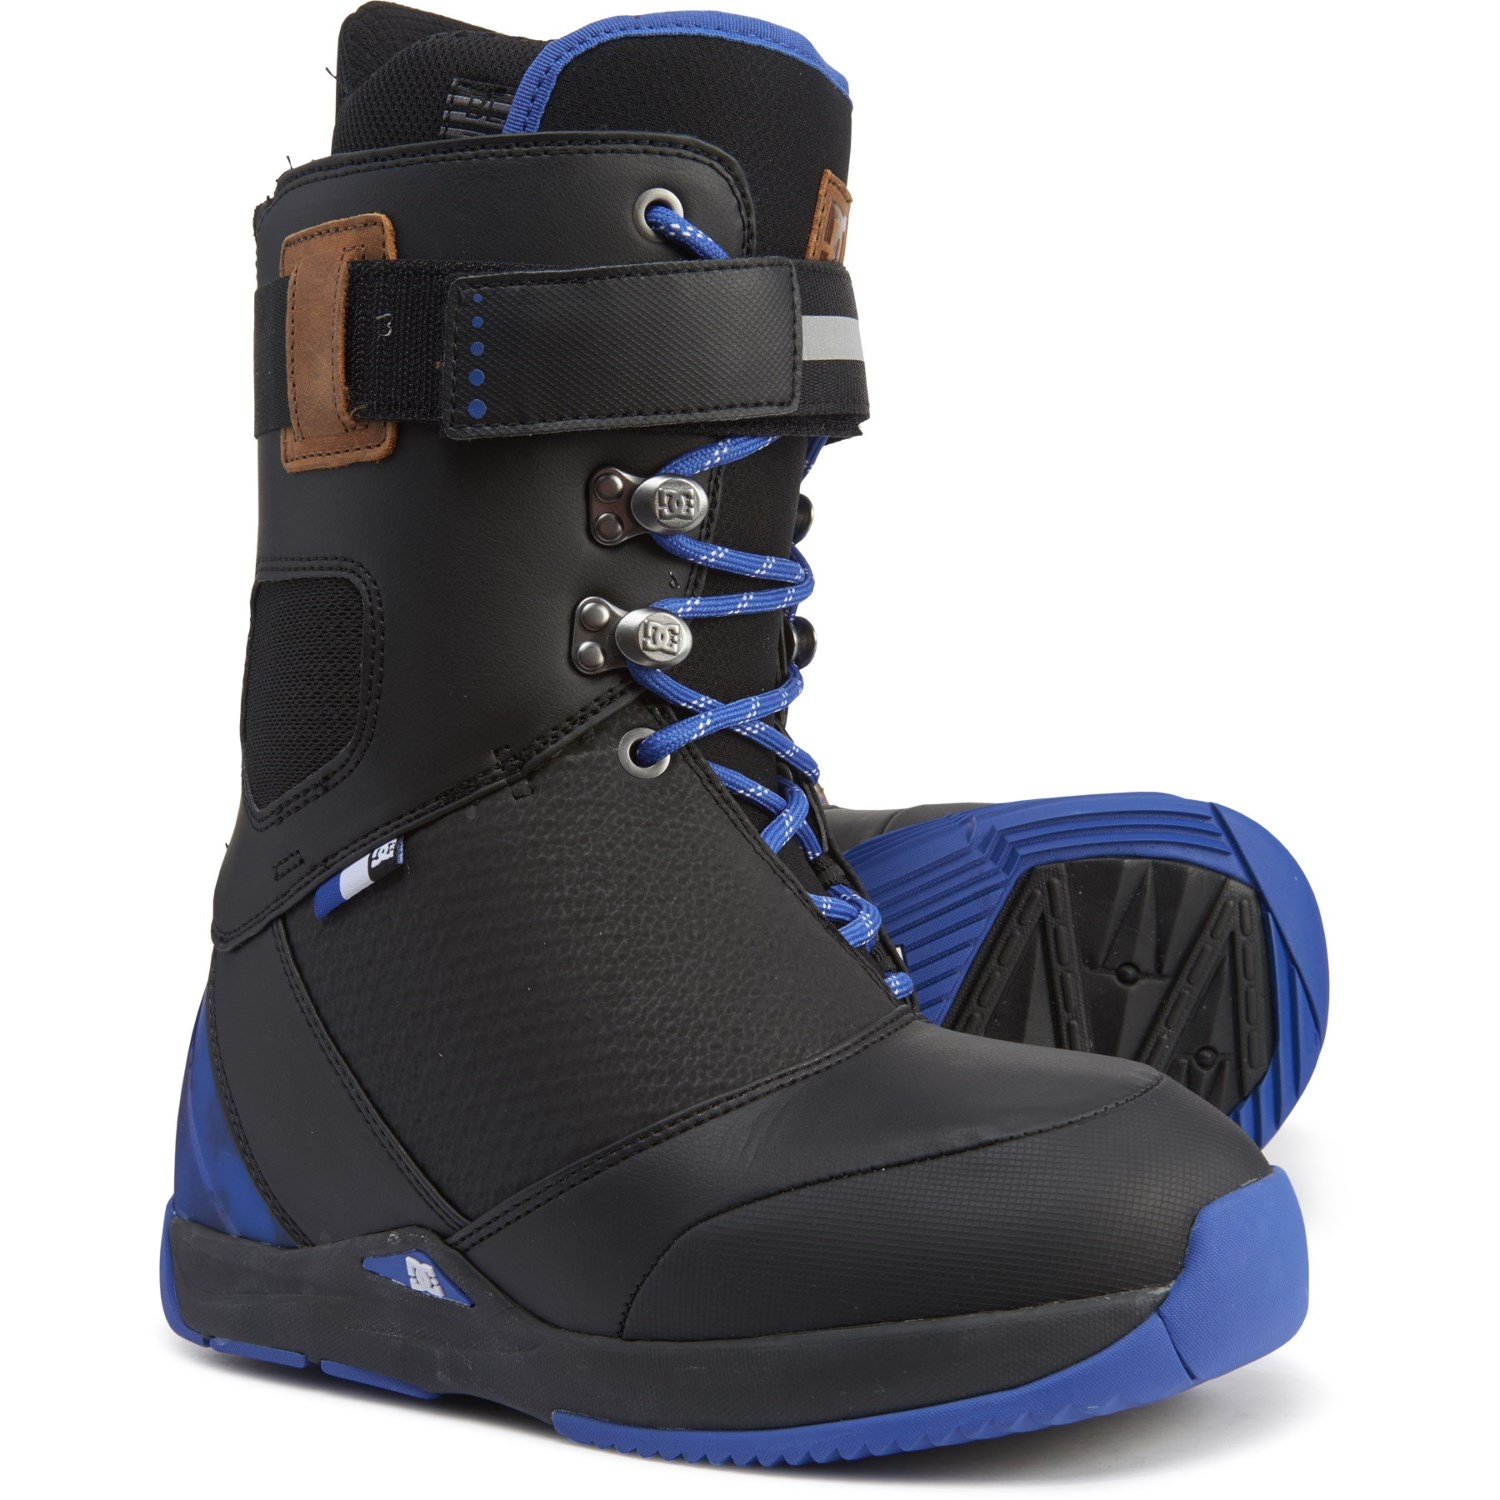 DC Shoes Tucknee Snowboard Boots (For